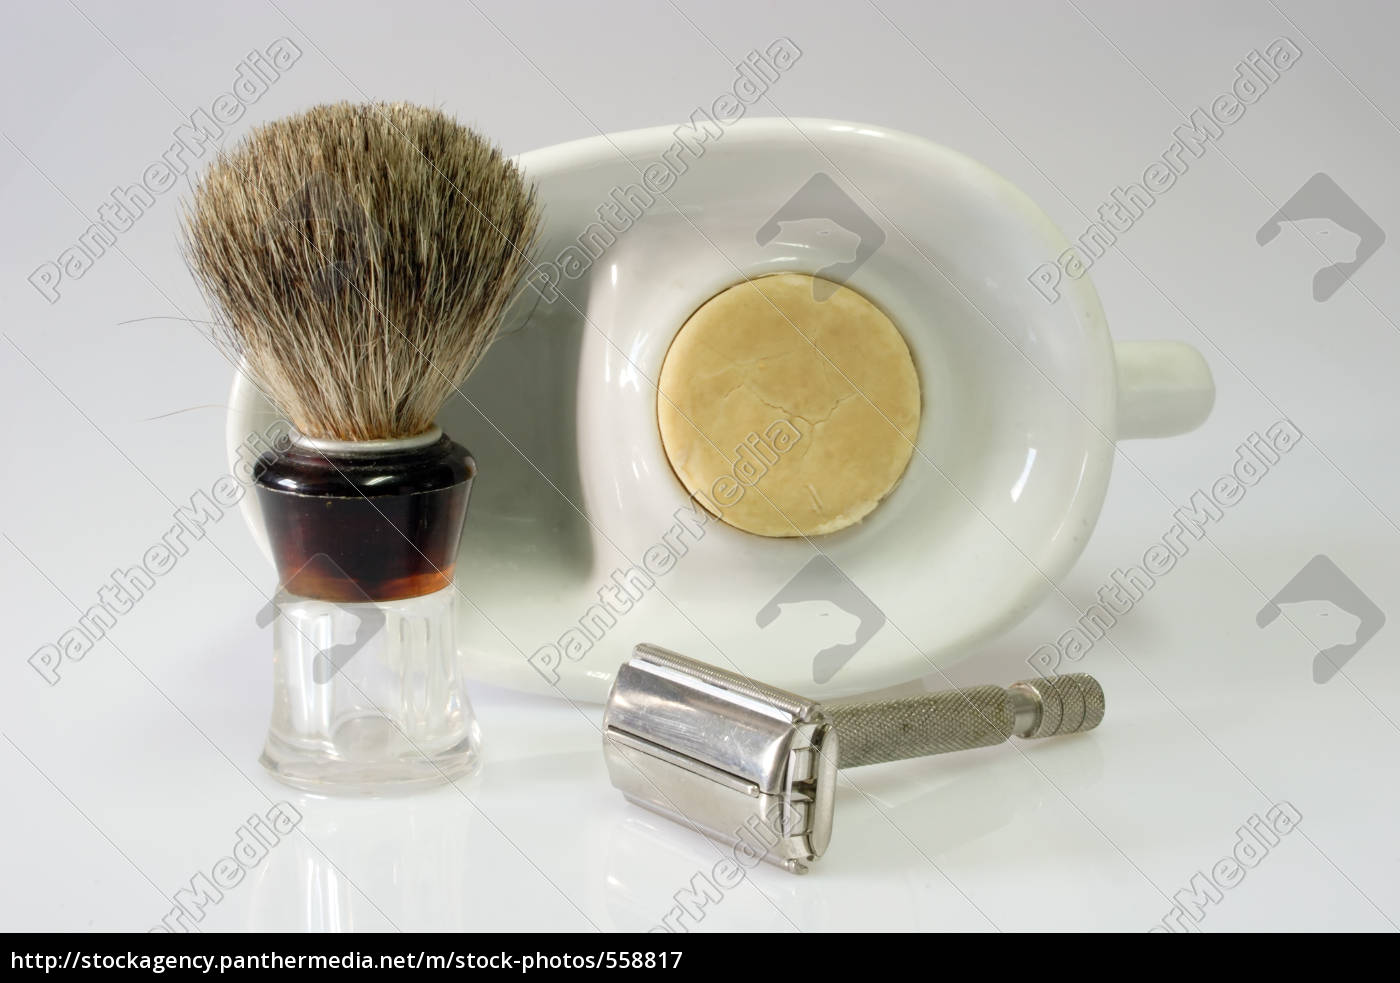 wet, shave - 558817